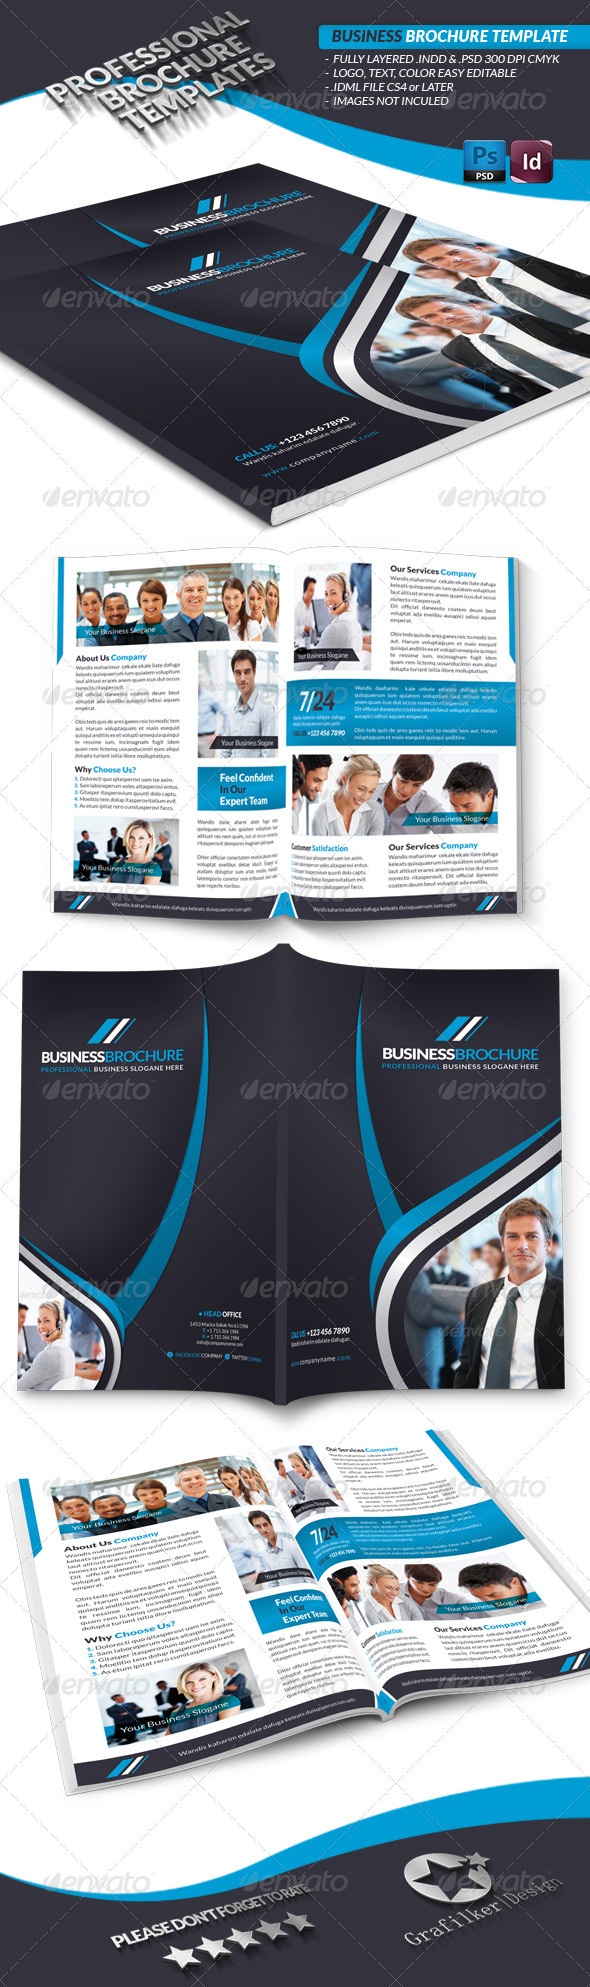 GraphicRiver Business Brochure Template 3574967